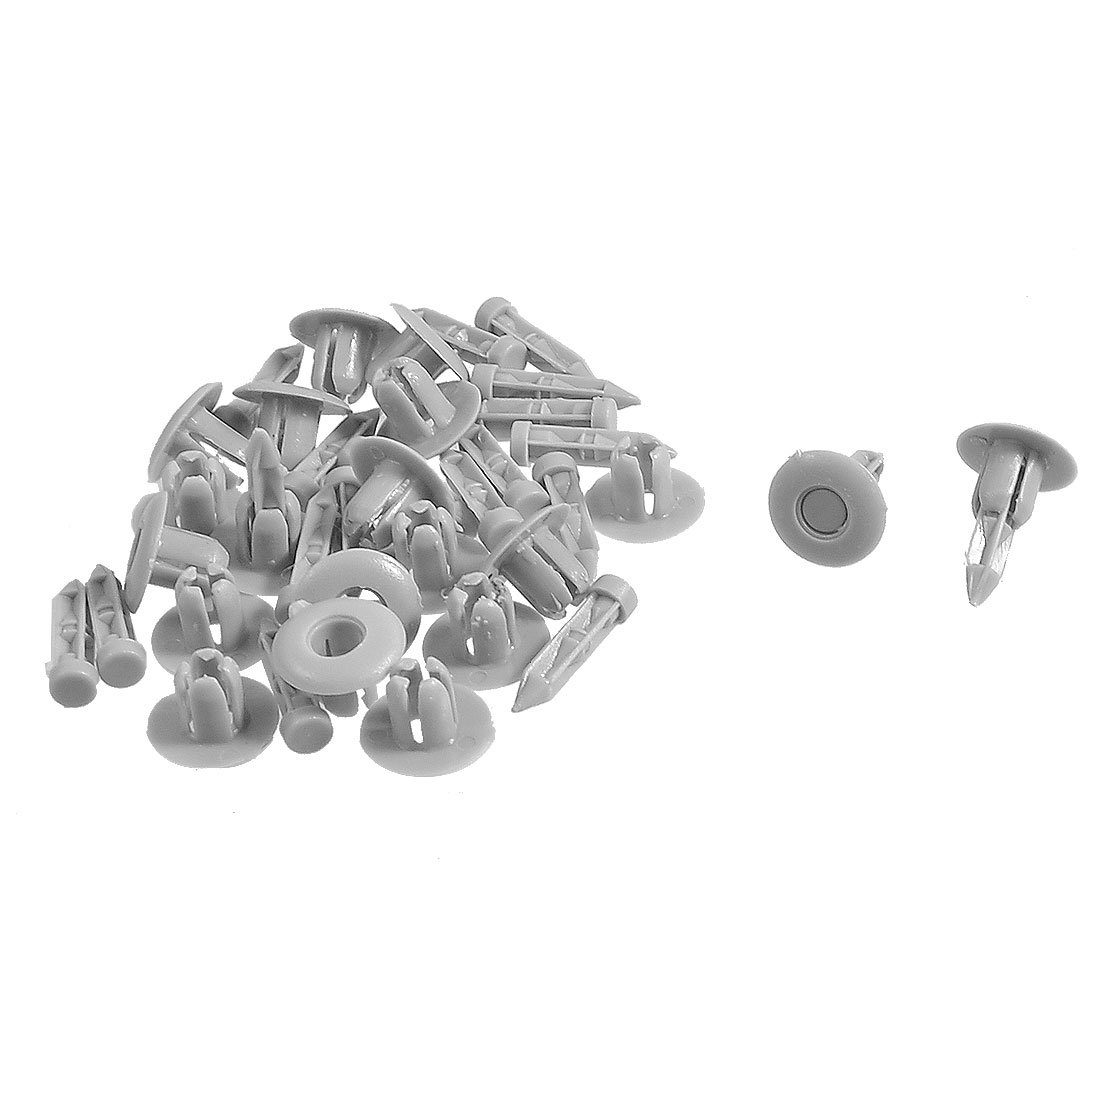 7mm Hole Plastic Rivet Auto Car Door Trim Panel Retainer Clip Gray 20 Pcs